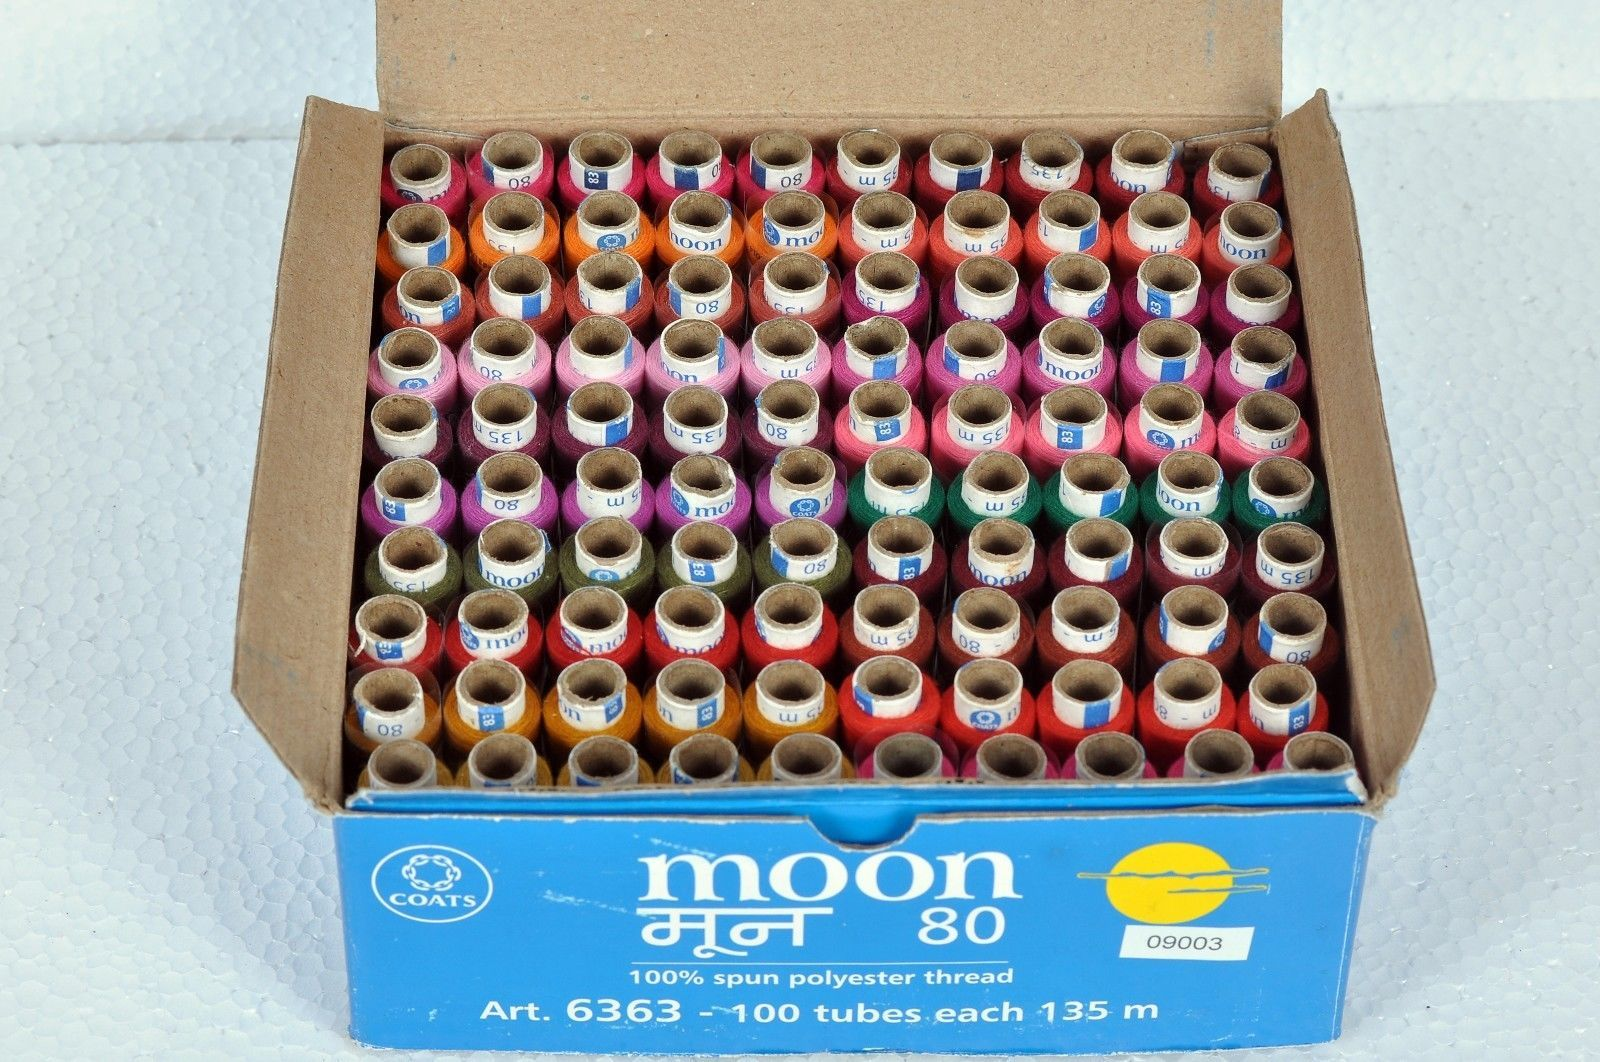 Coat's Moon all purpose sewing thread 1 box Moon Coats Sewing Polyester Reels